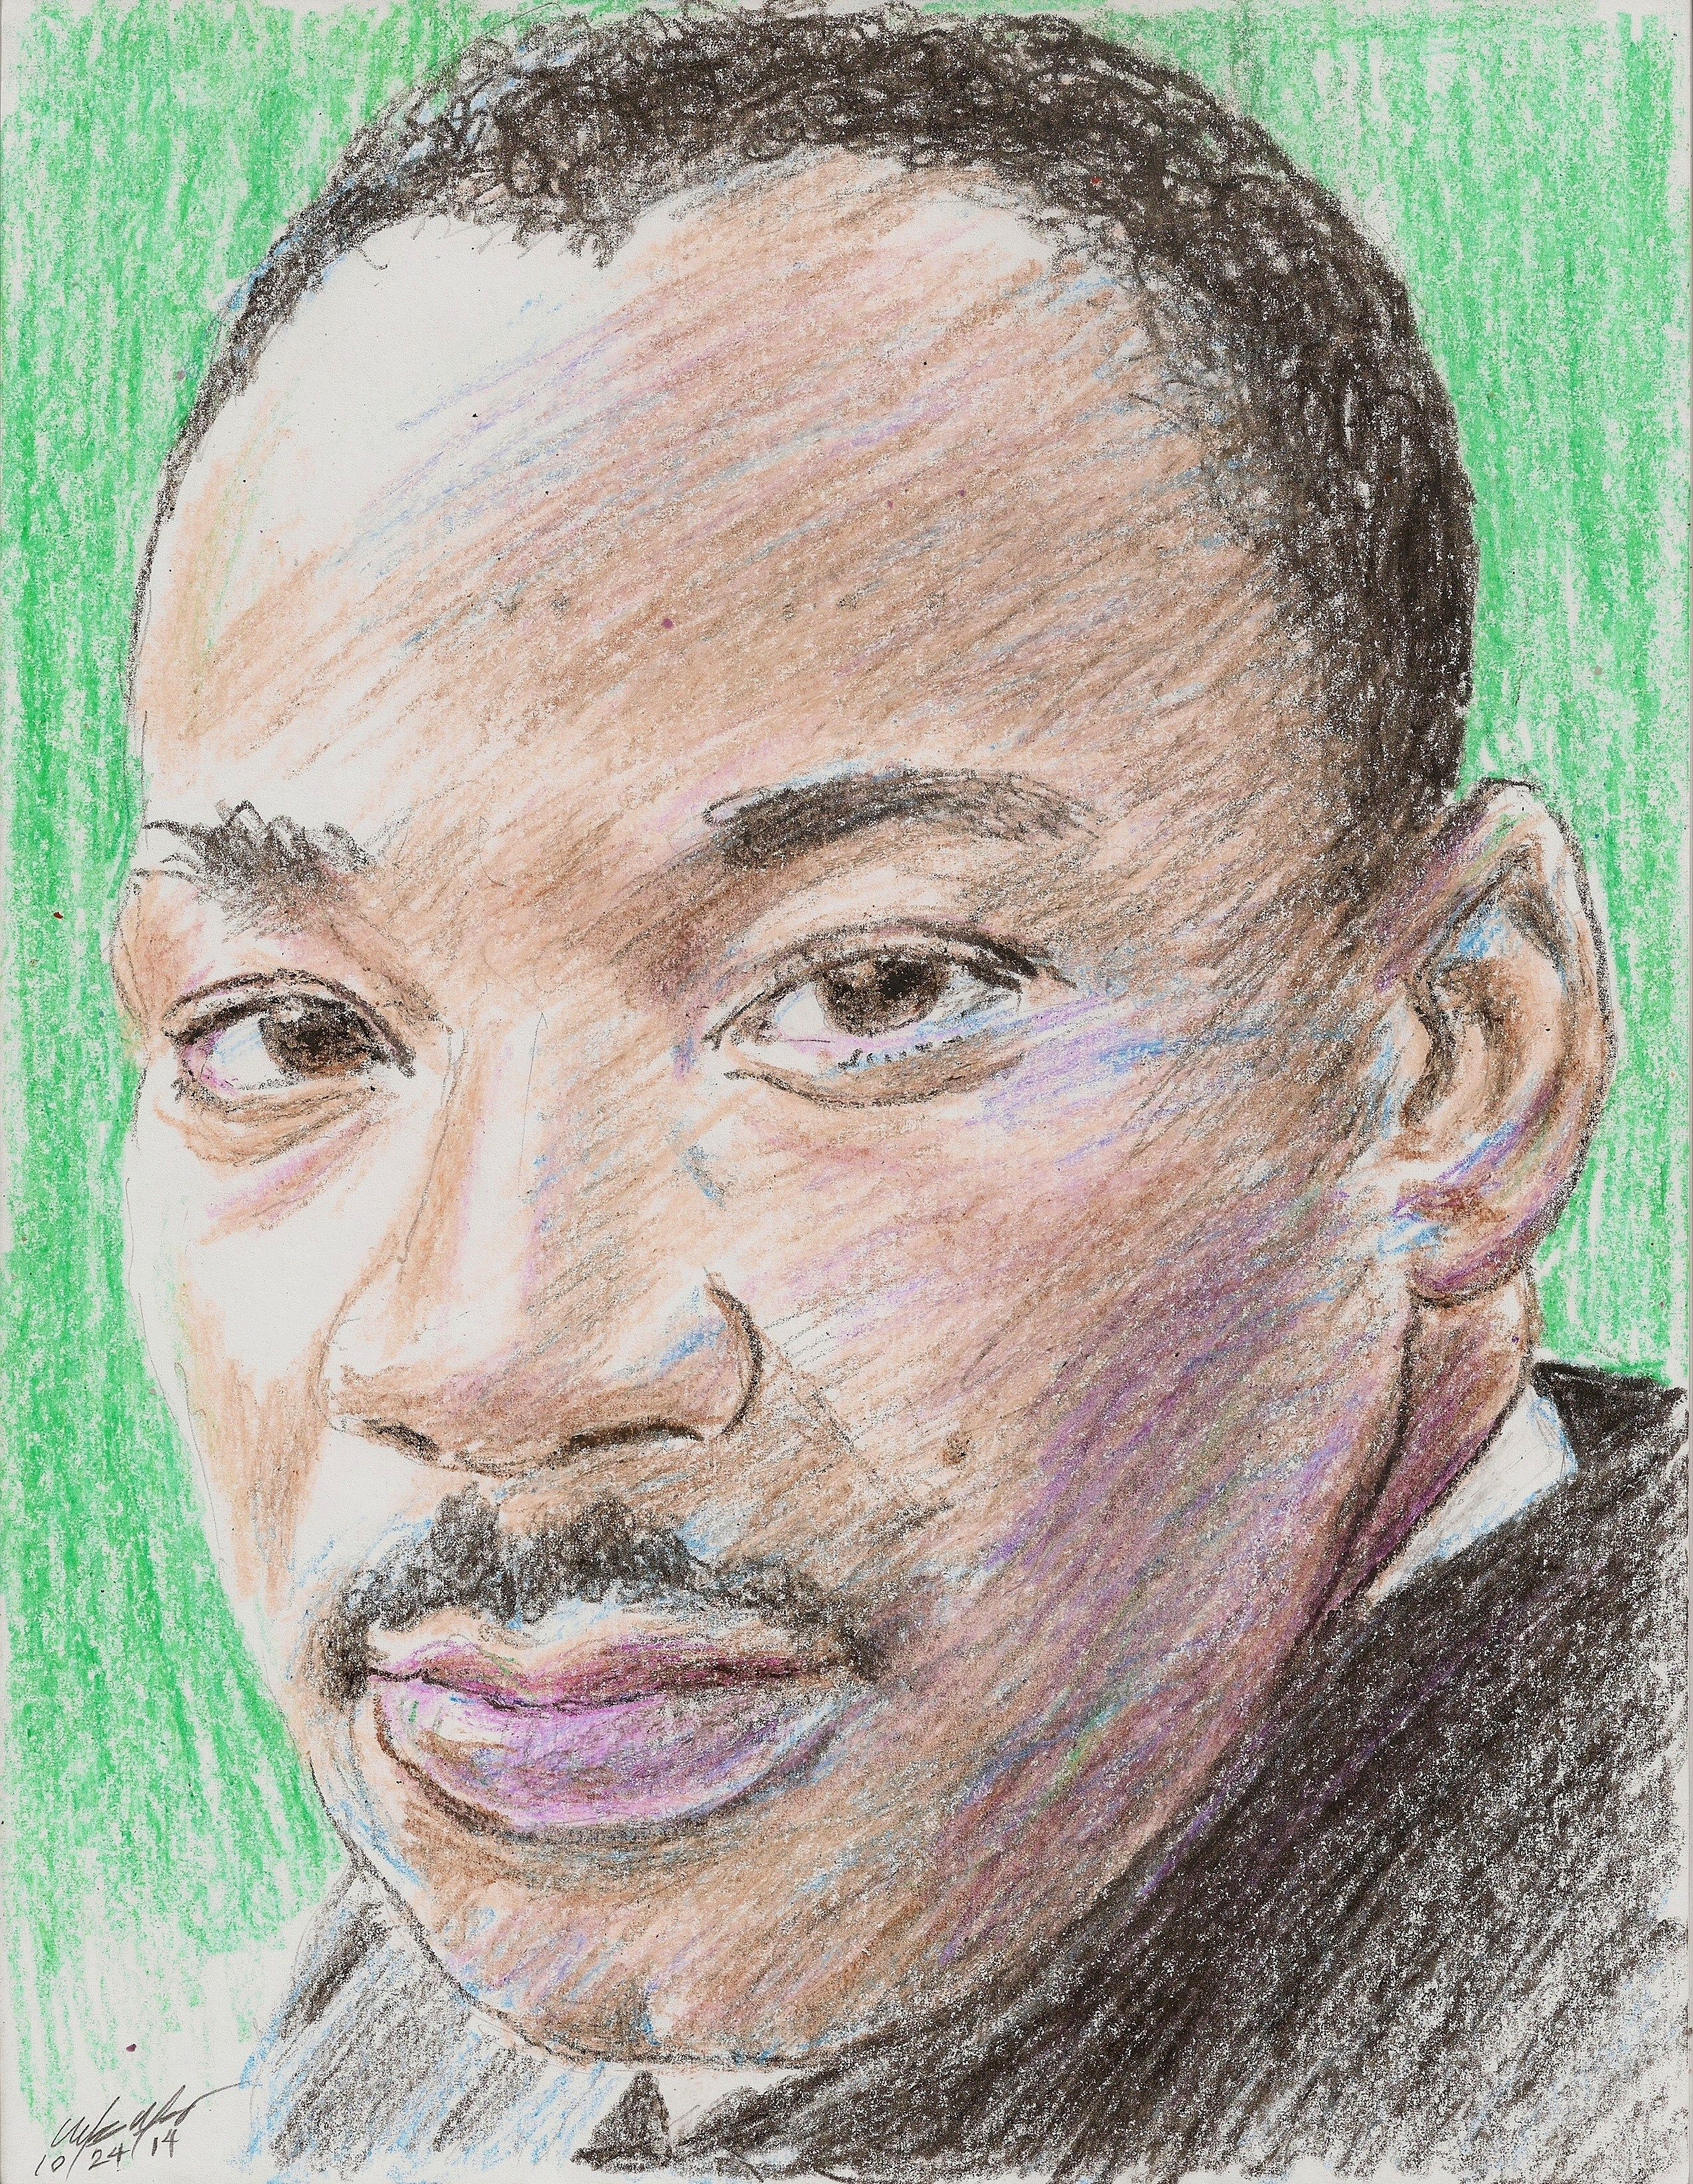 my crayons drawing of the Reverend Dr Martin Luther King Jr ...